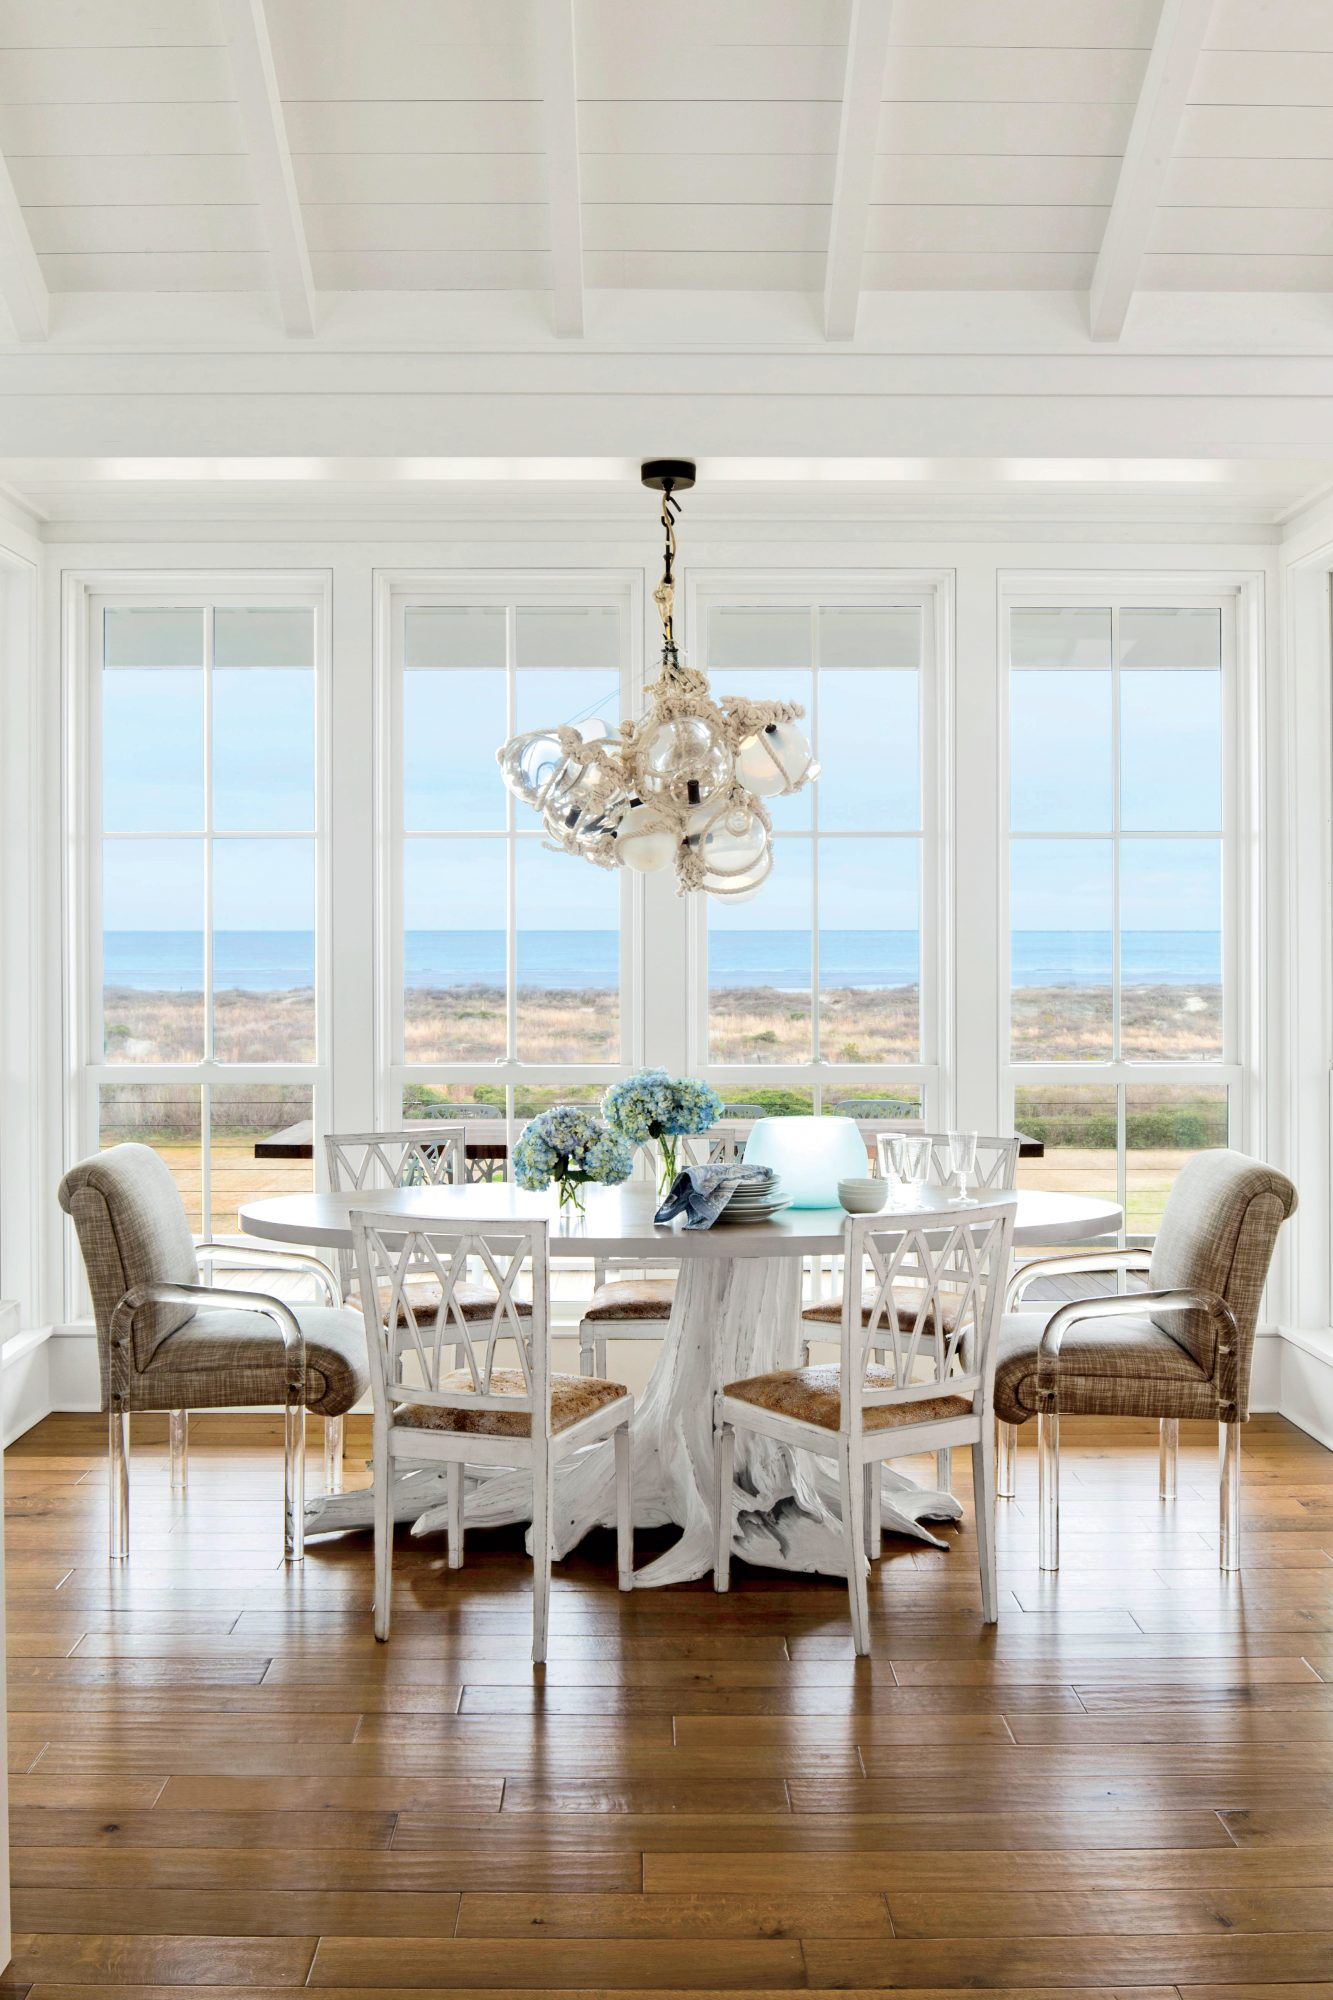 A low-profile table, armless chairs with clean lines, and a glass-float chandelier keep all eyes on the view, while sturdy upholstered end chairs with acrylic arms add gravitas to the space.                             Idea Spotlight                             Bring the outside in by choosing pieces that highlight the natural landscape through their color or form, like this driftwood-inspiredtable.